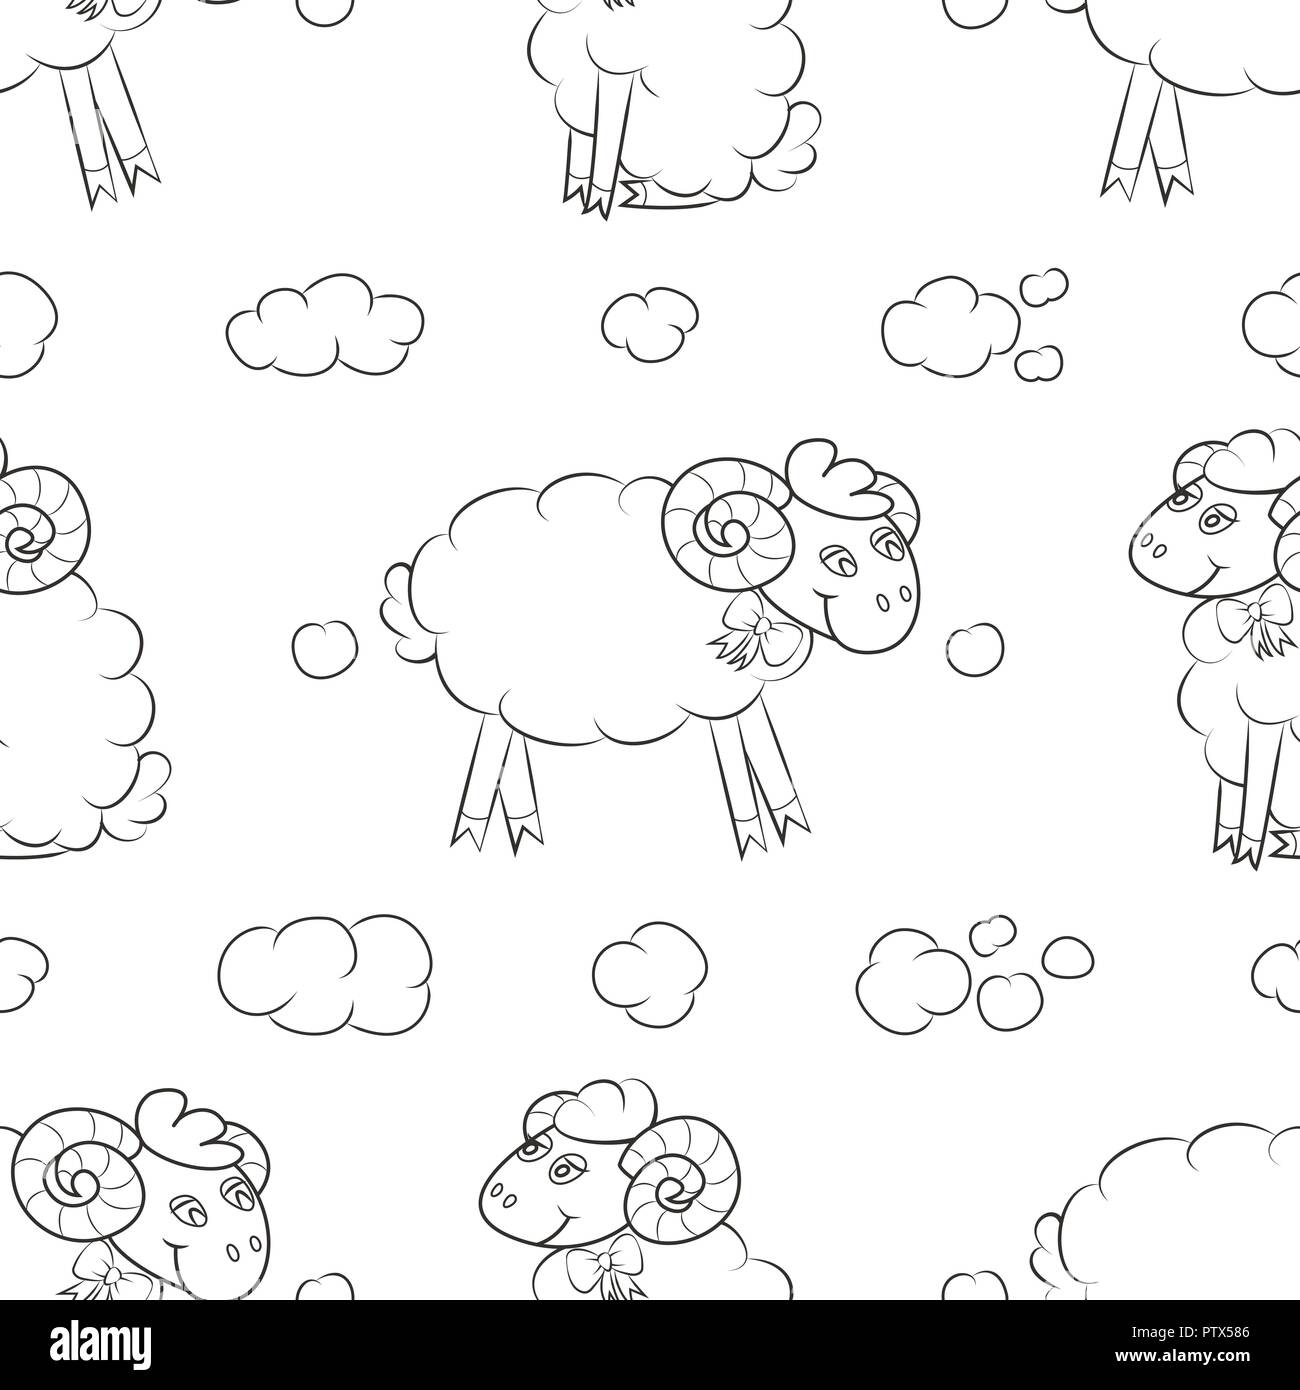 Fluffy sheep flying in the clouds. Baby Wallpaper. Vector illustration. - Stock Image